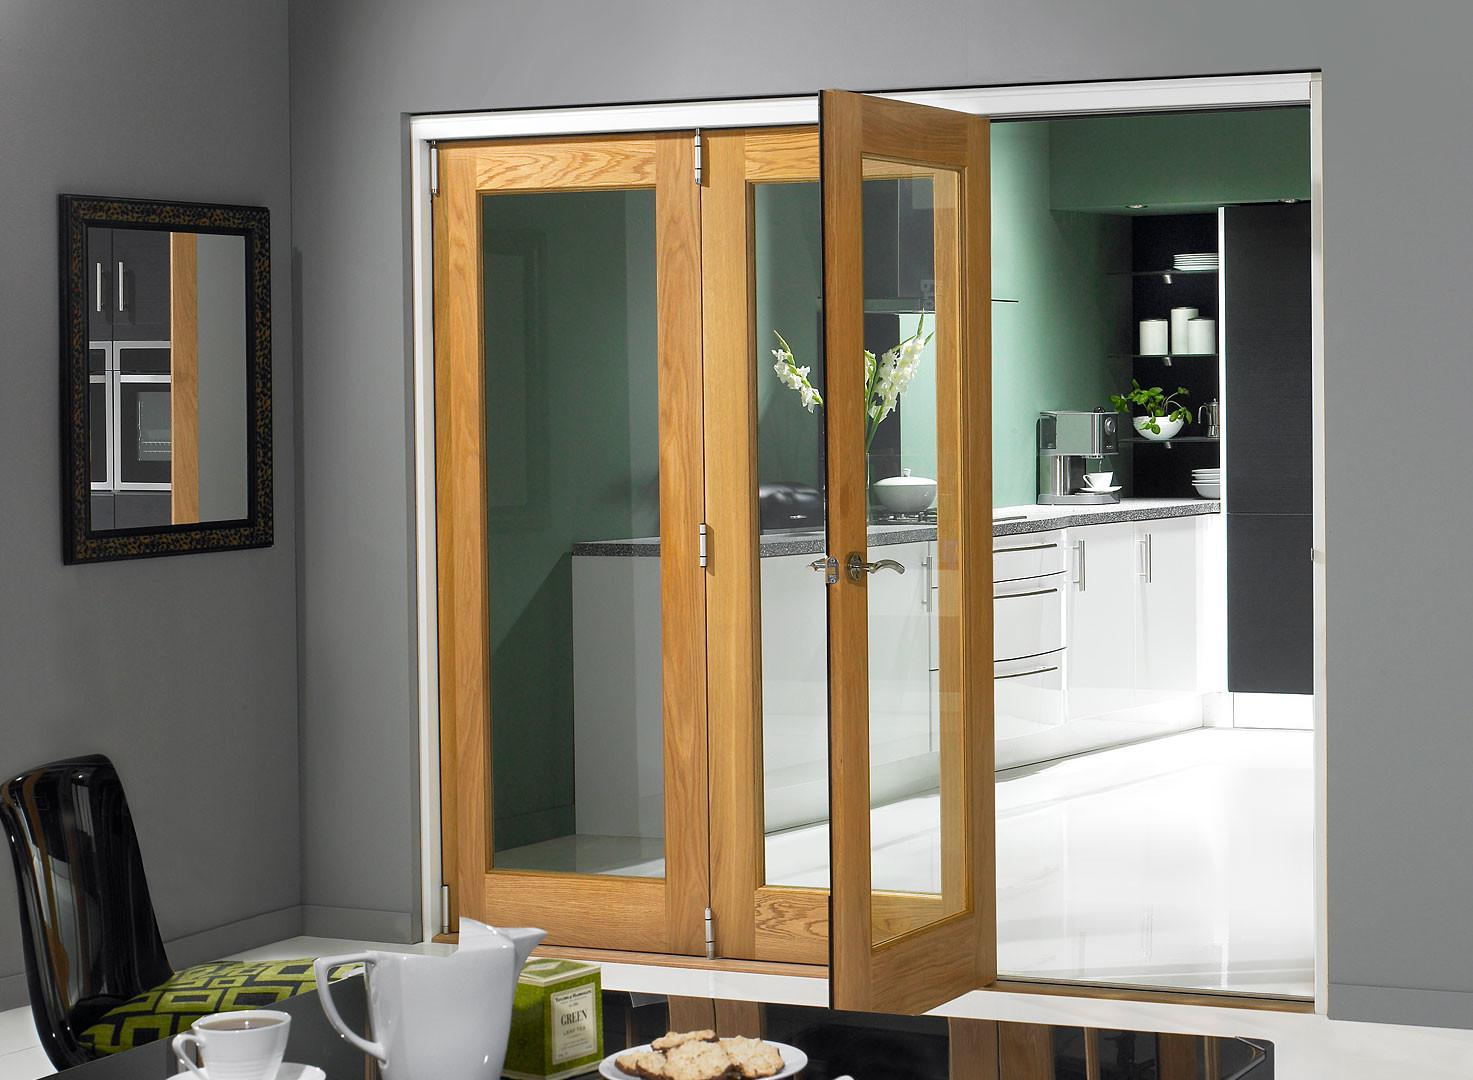 Divider Stunning Folding Room Partitions Restroom